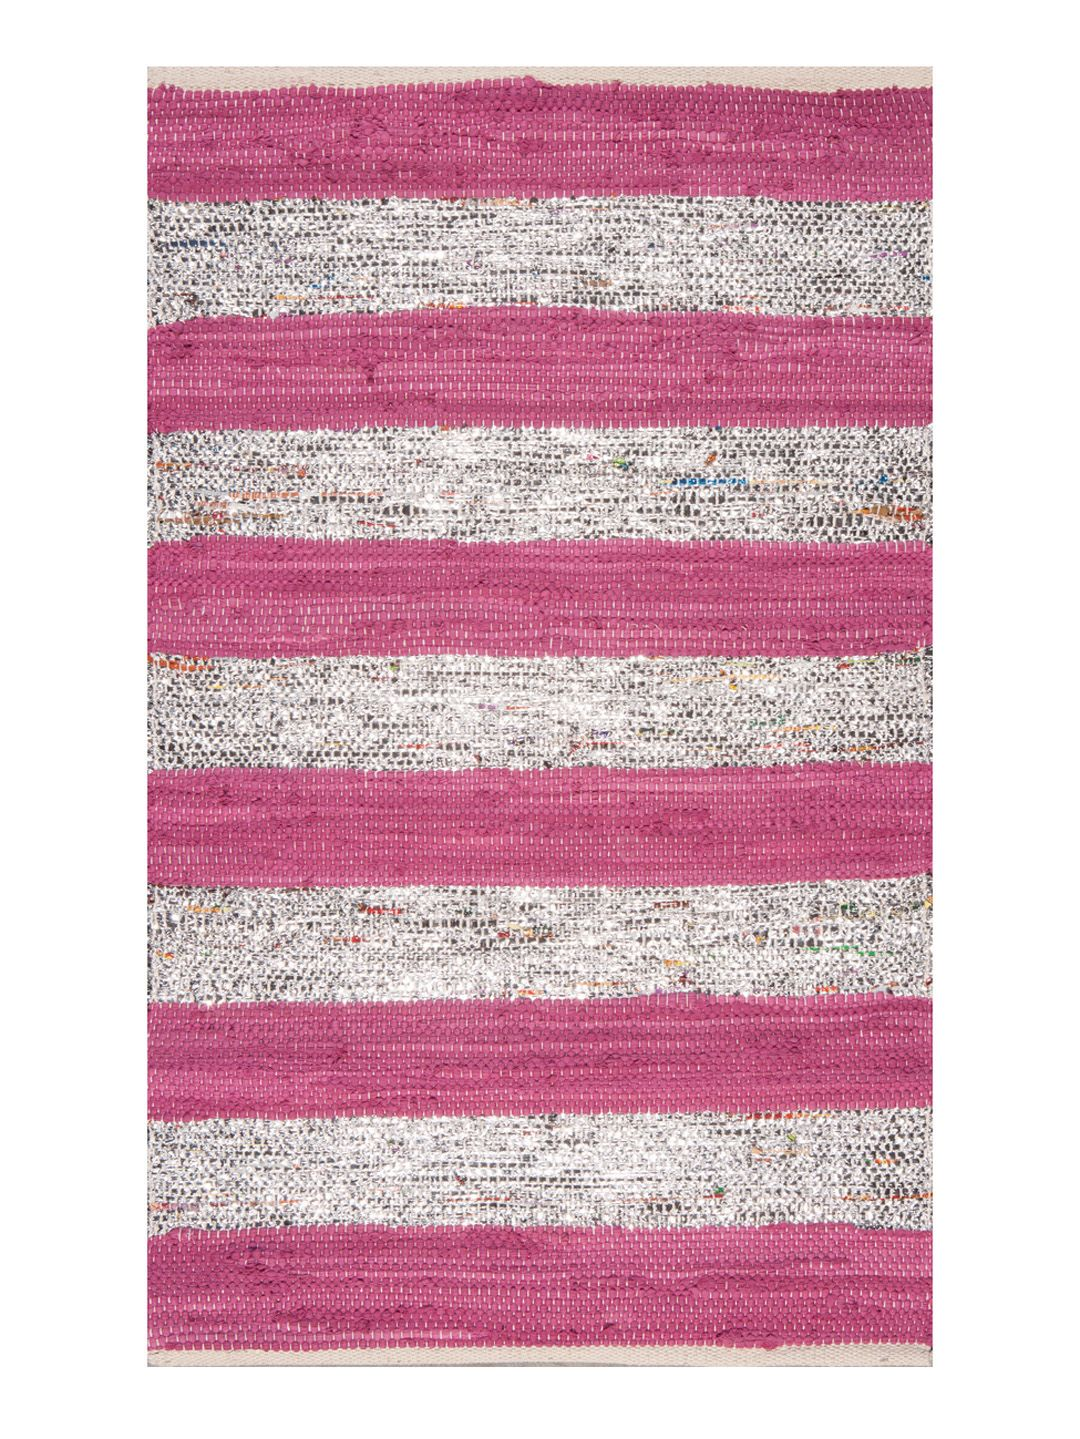 Tuttifrutti Hand Woven Rug From Surya Kids Rugs On Gilt